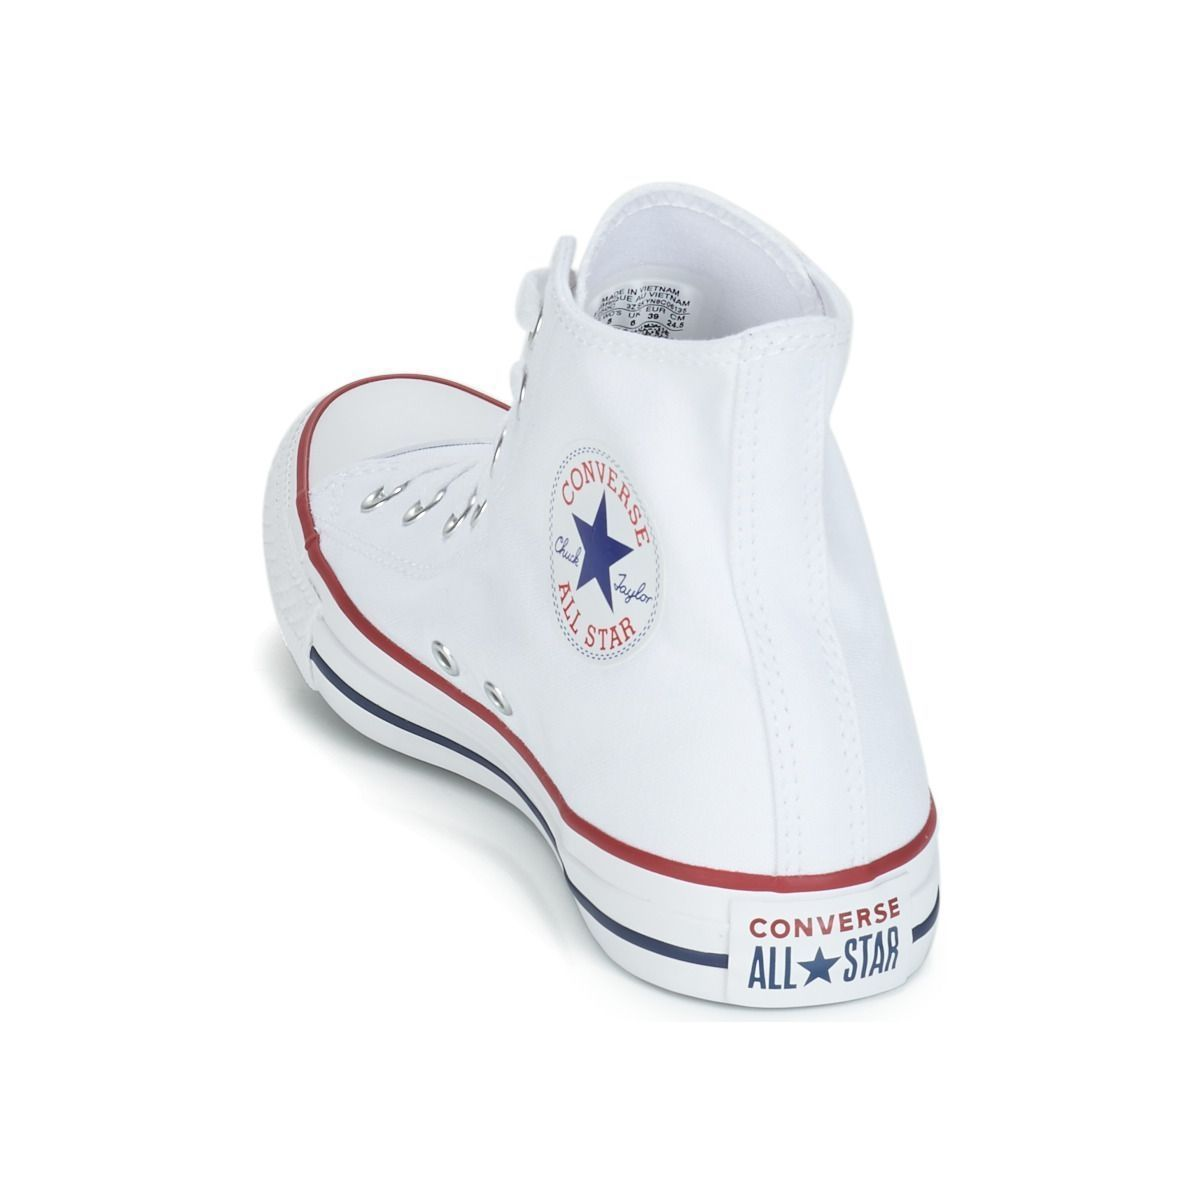 Converse fille ctas all star hi blanc1629802_5